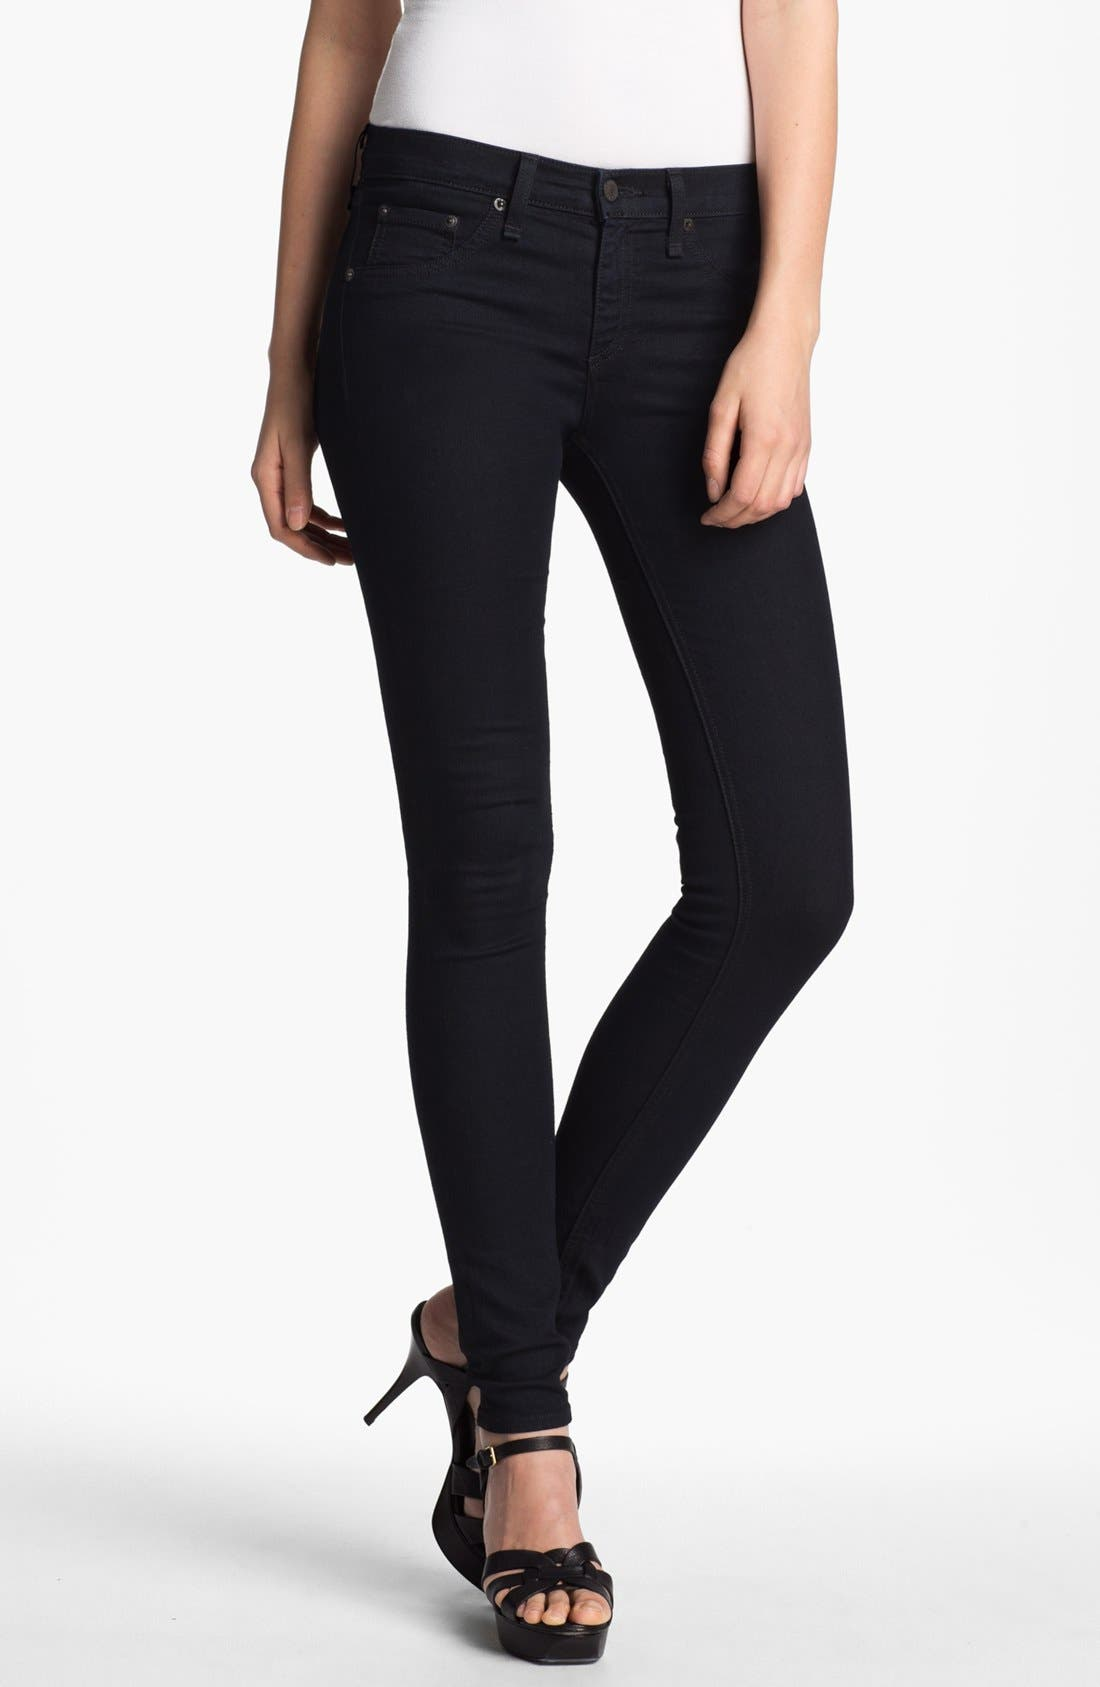 JEAN 'The Legging' Stretch Denim Leggings,                         Main,                         color, Midnight